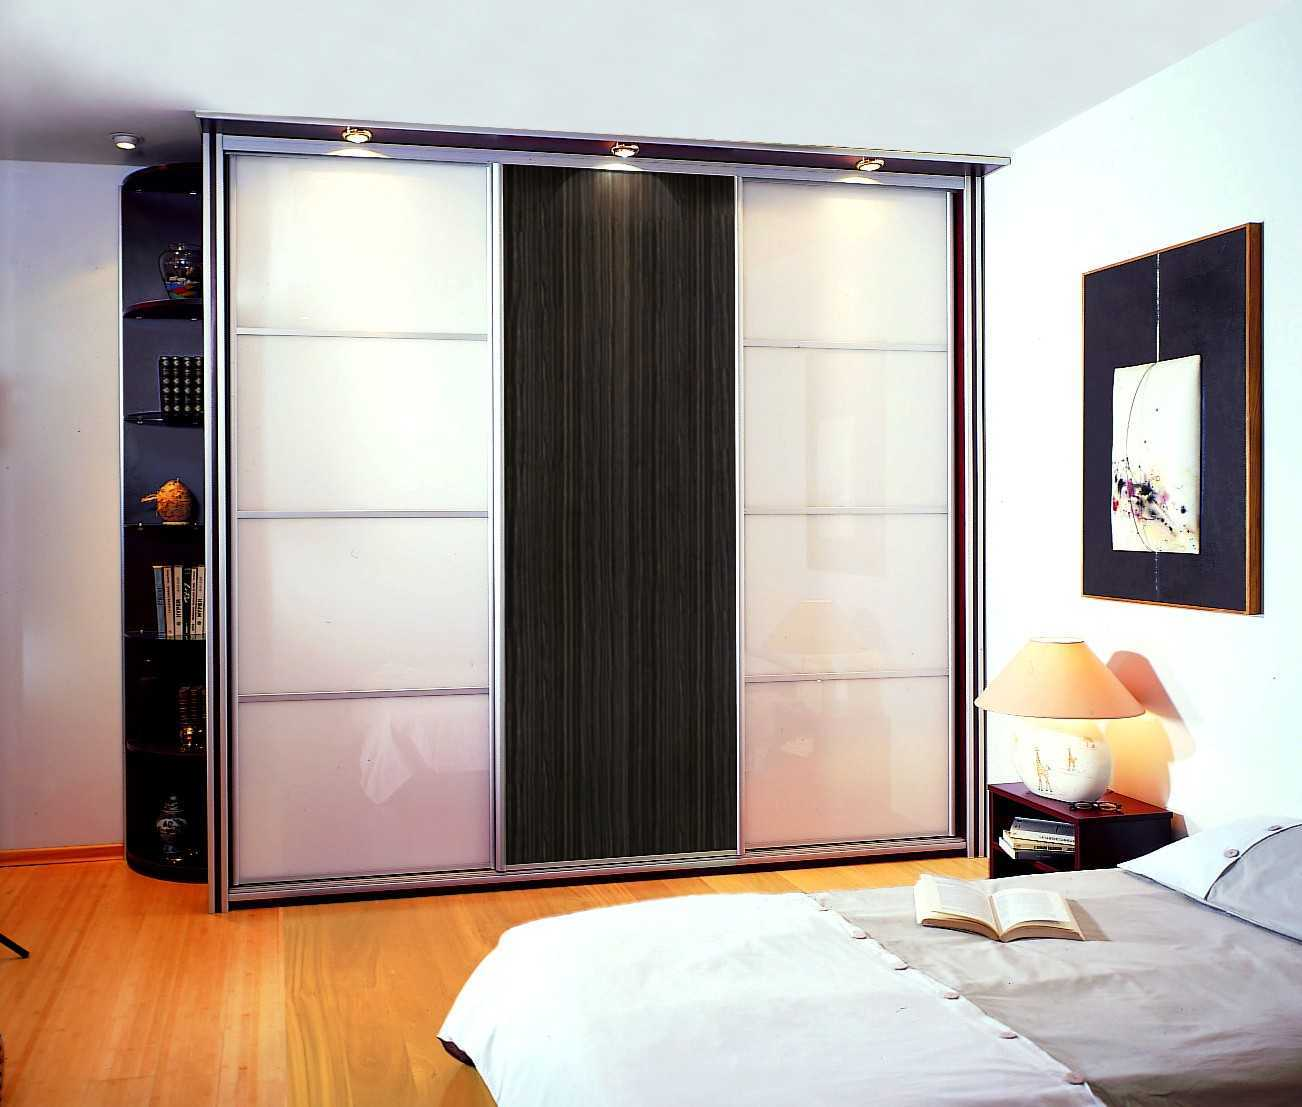 portes coulissantes la maison des bibliotheques. Black Bedroom Furniture Sets. Home Design Ideas